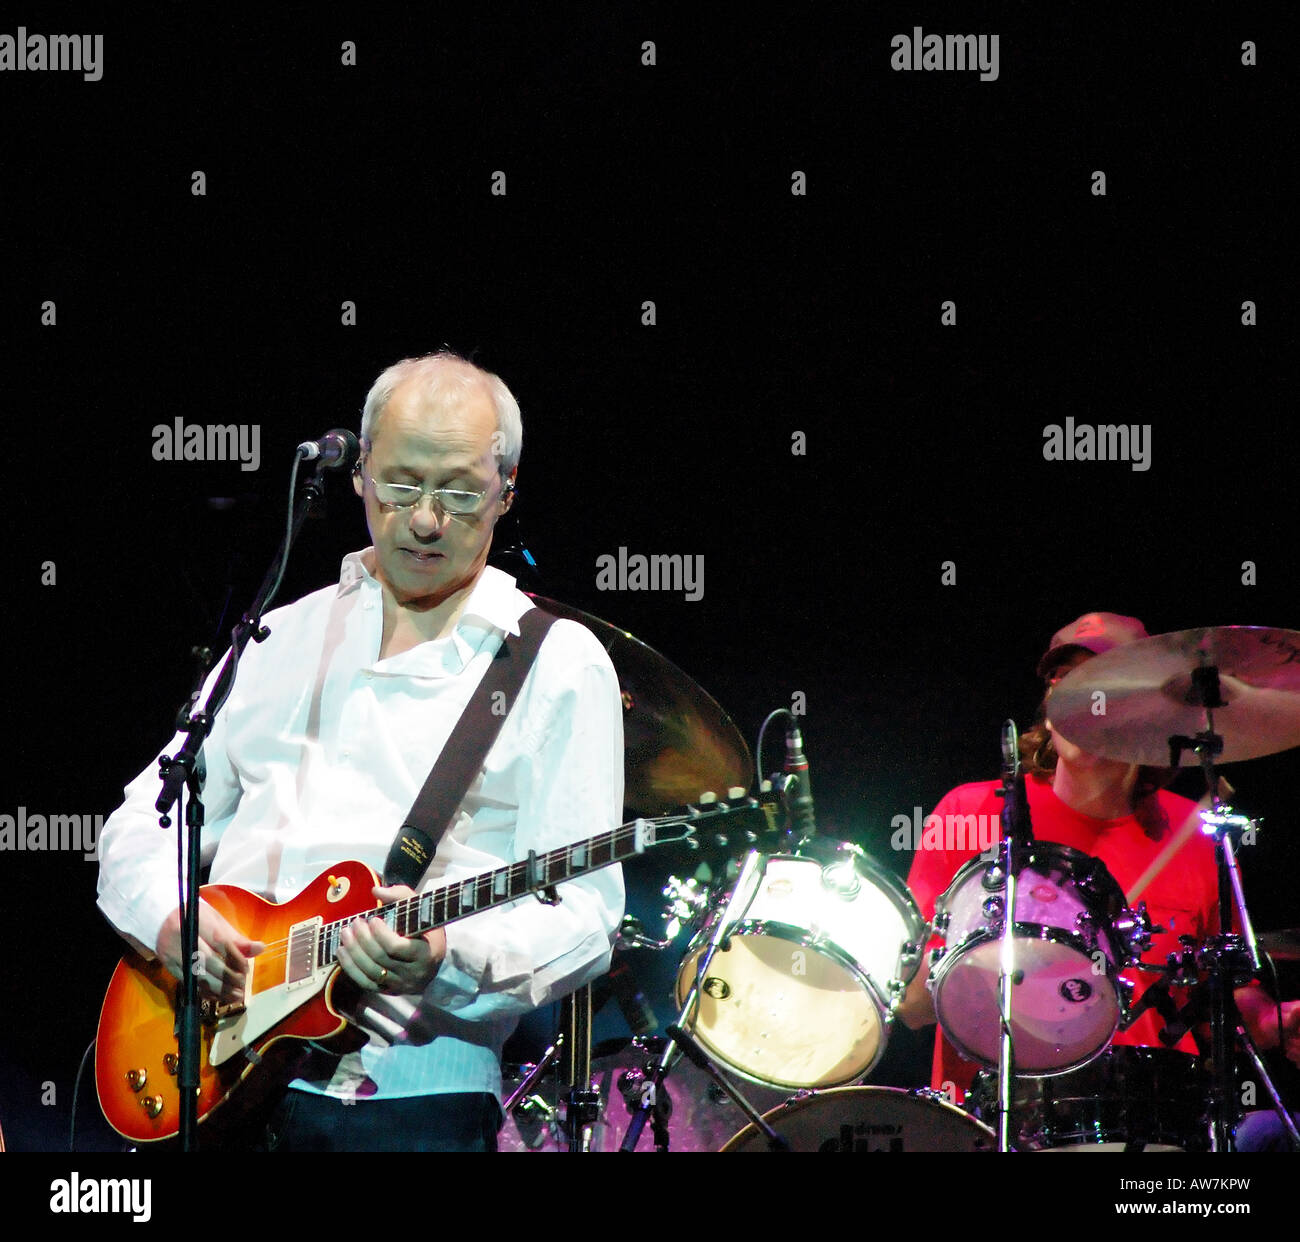 Mark Knopfler performing during his Shangri-La tour in Melbourne, Australia  - Stock Image